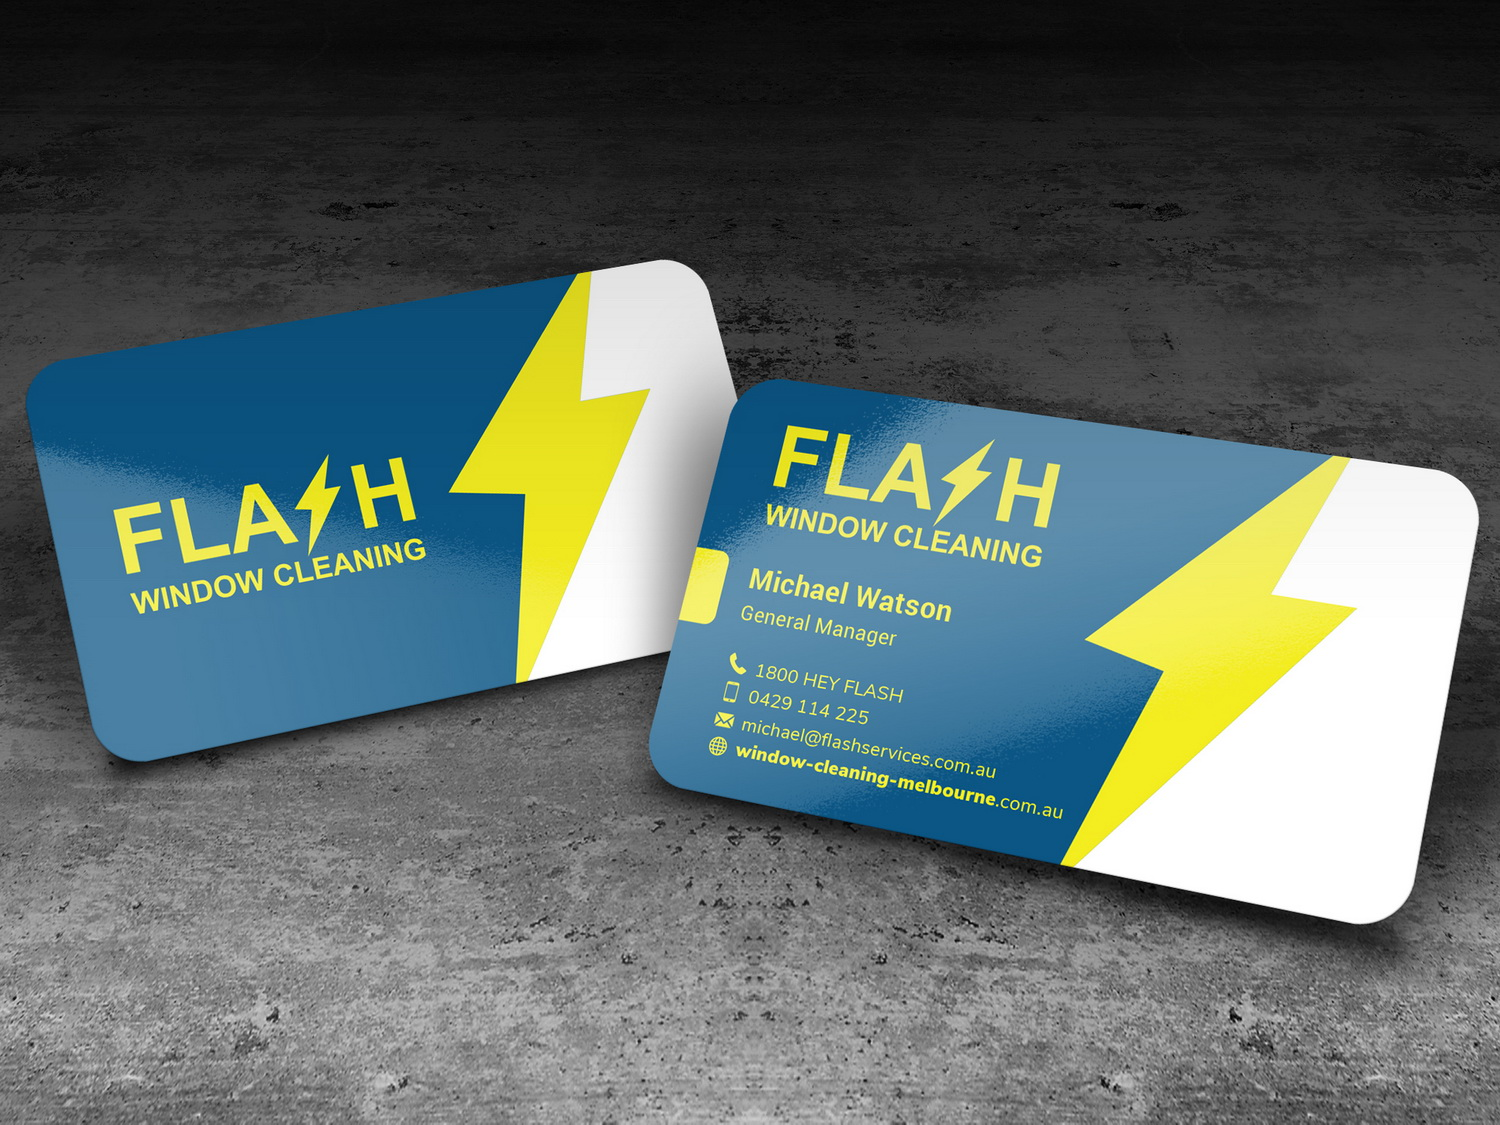 Serious modern window cleaning business card design for a company business card design by cinigela87 for this project design 18755516 reheart Images